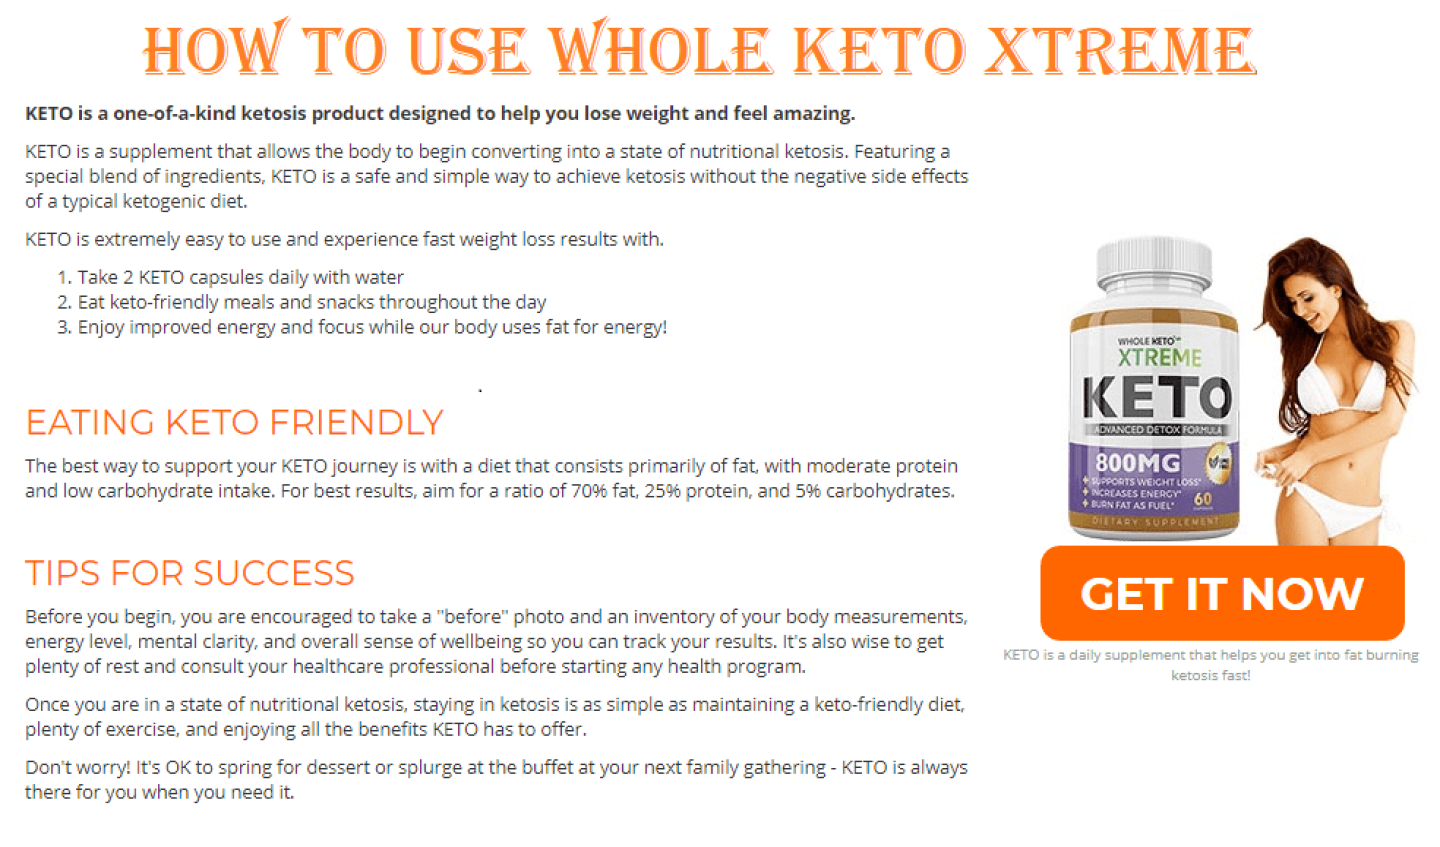 Whole Keto Xtreme Australia pills